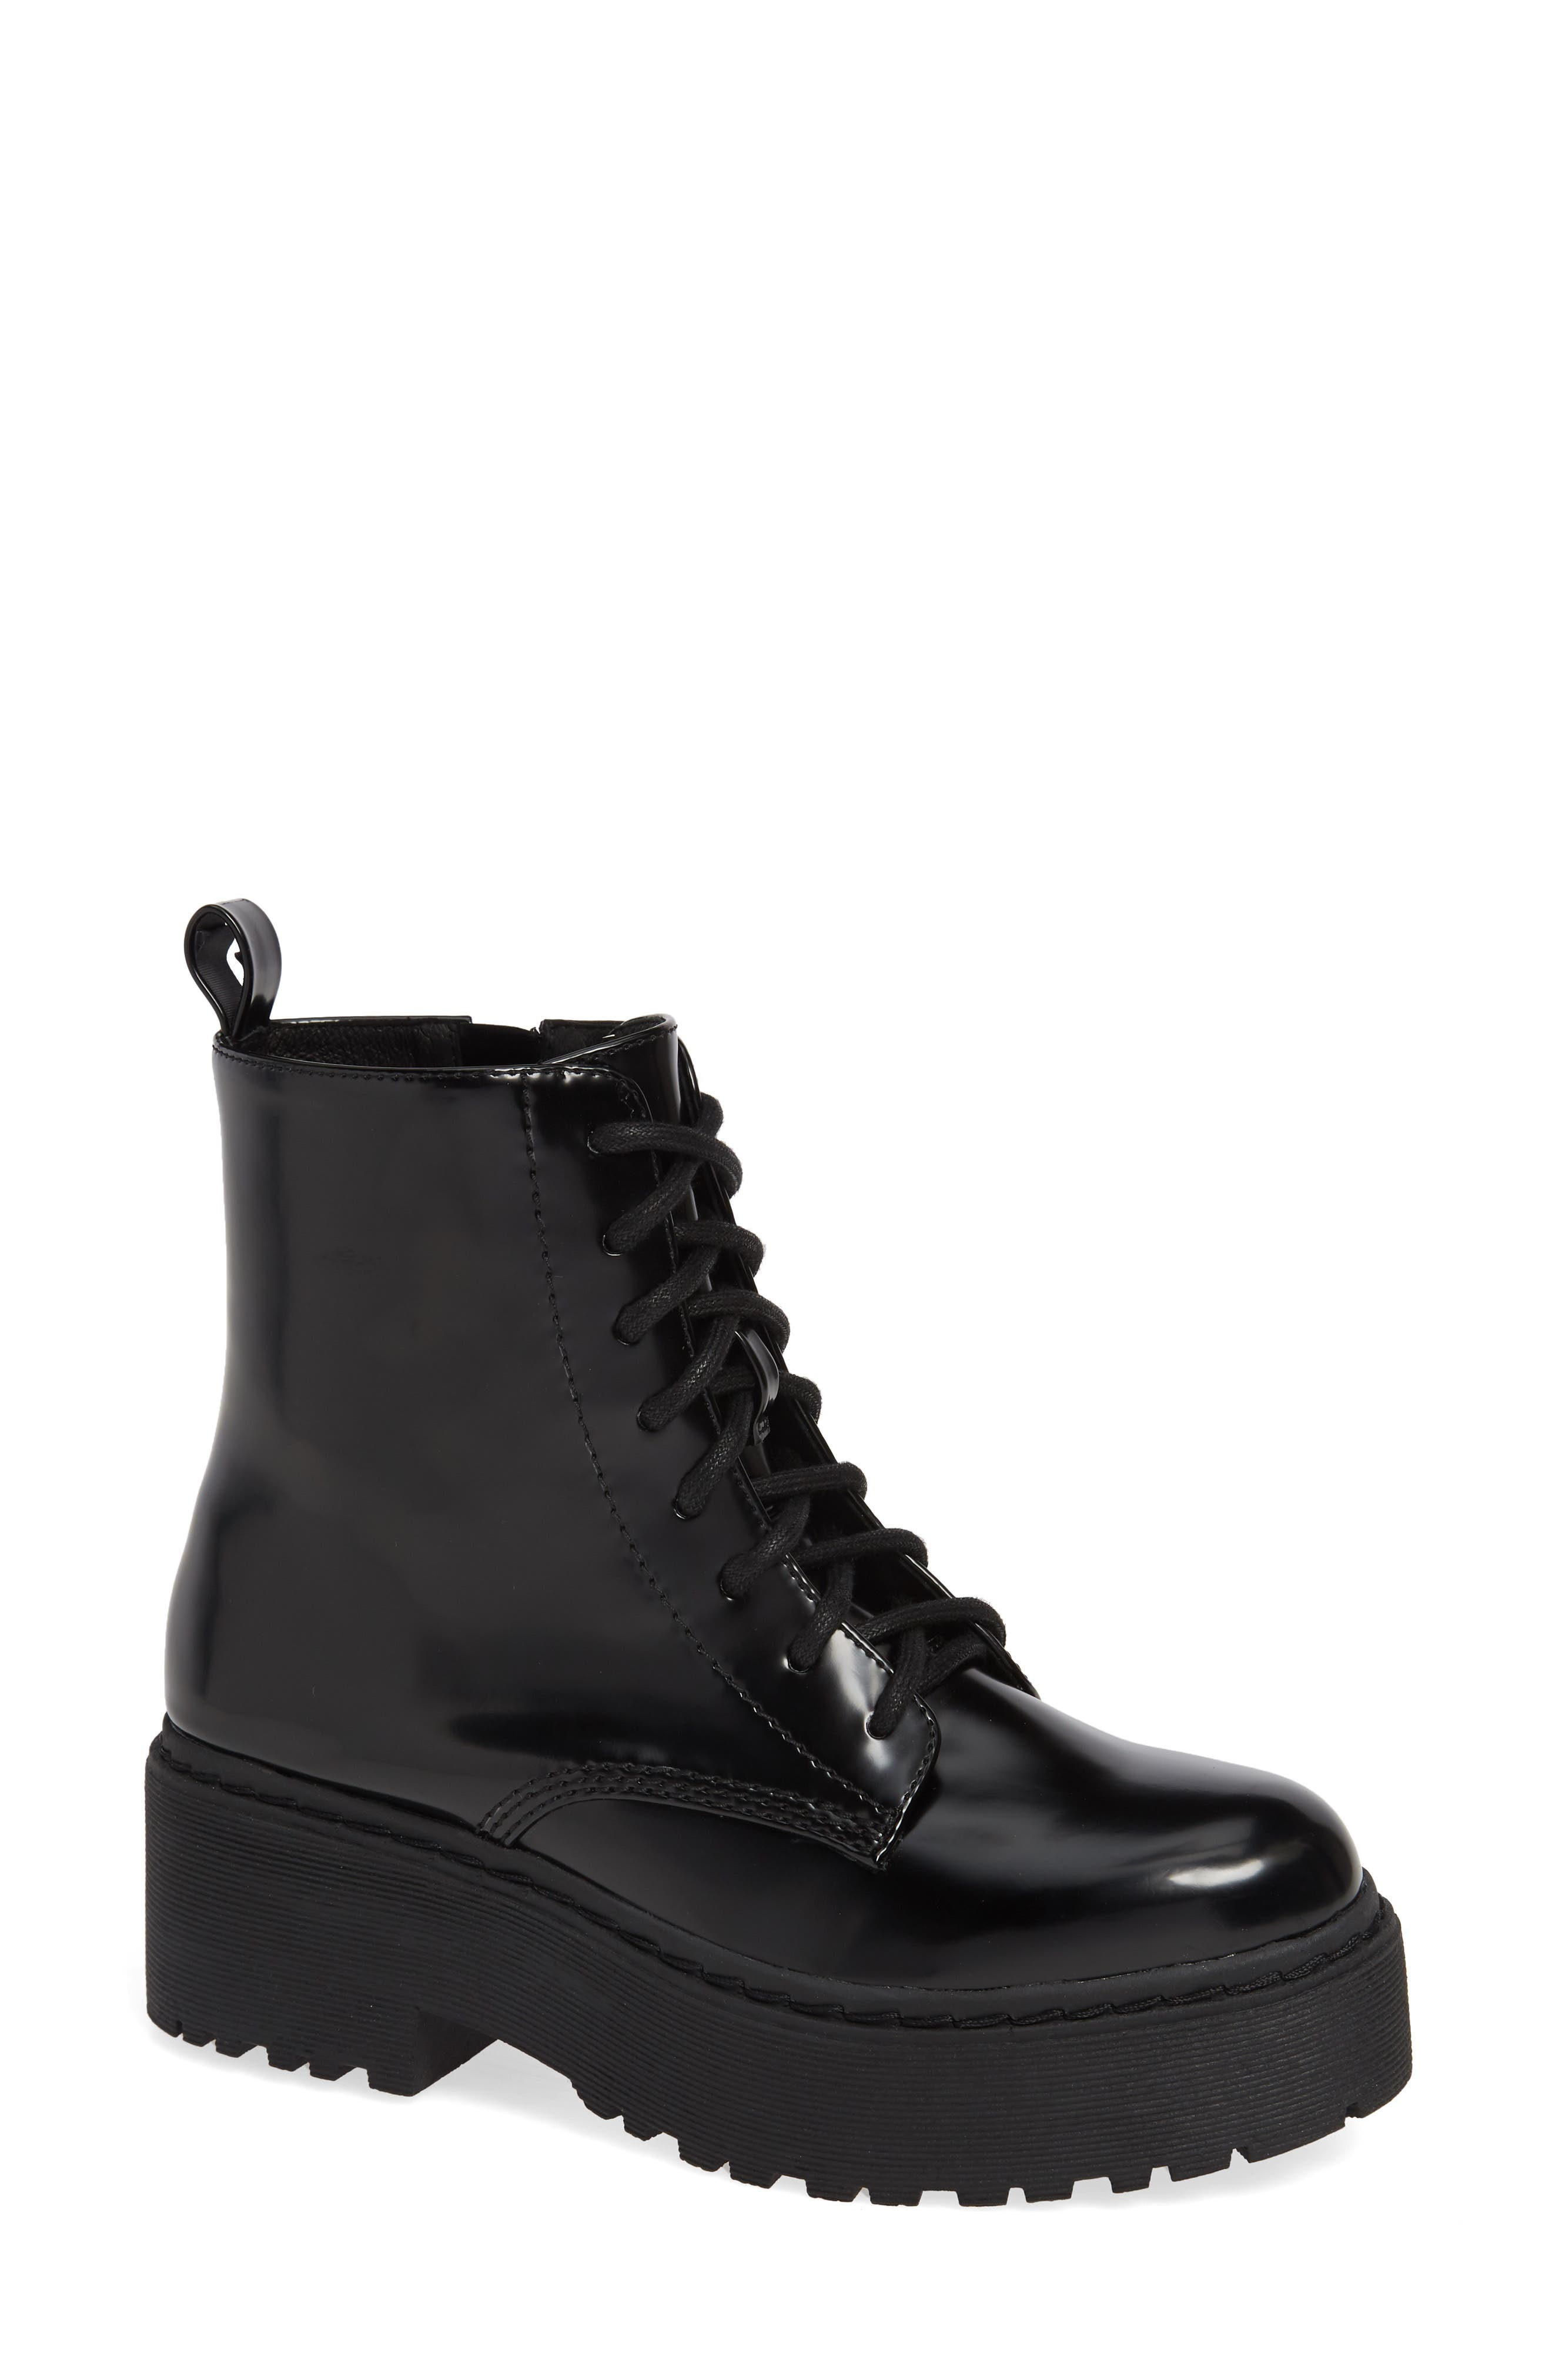 JEFFREY CAMPBELL, District Combat Boot, Main thumbnail 1, color, BLACK LEATHER